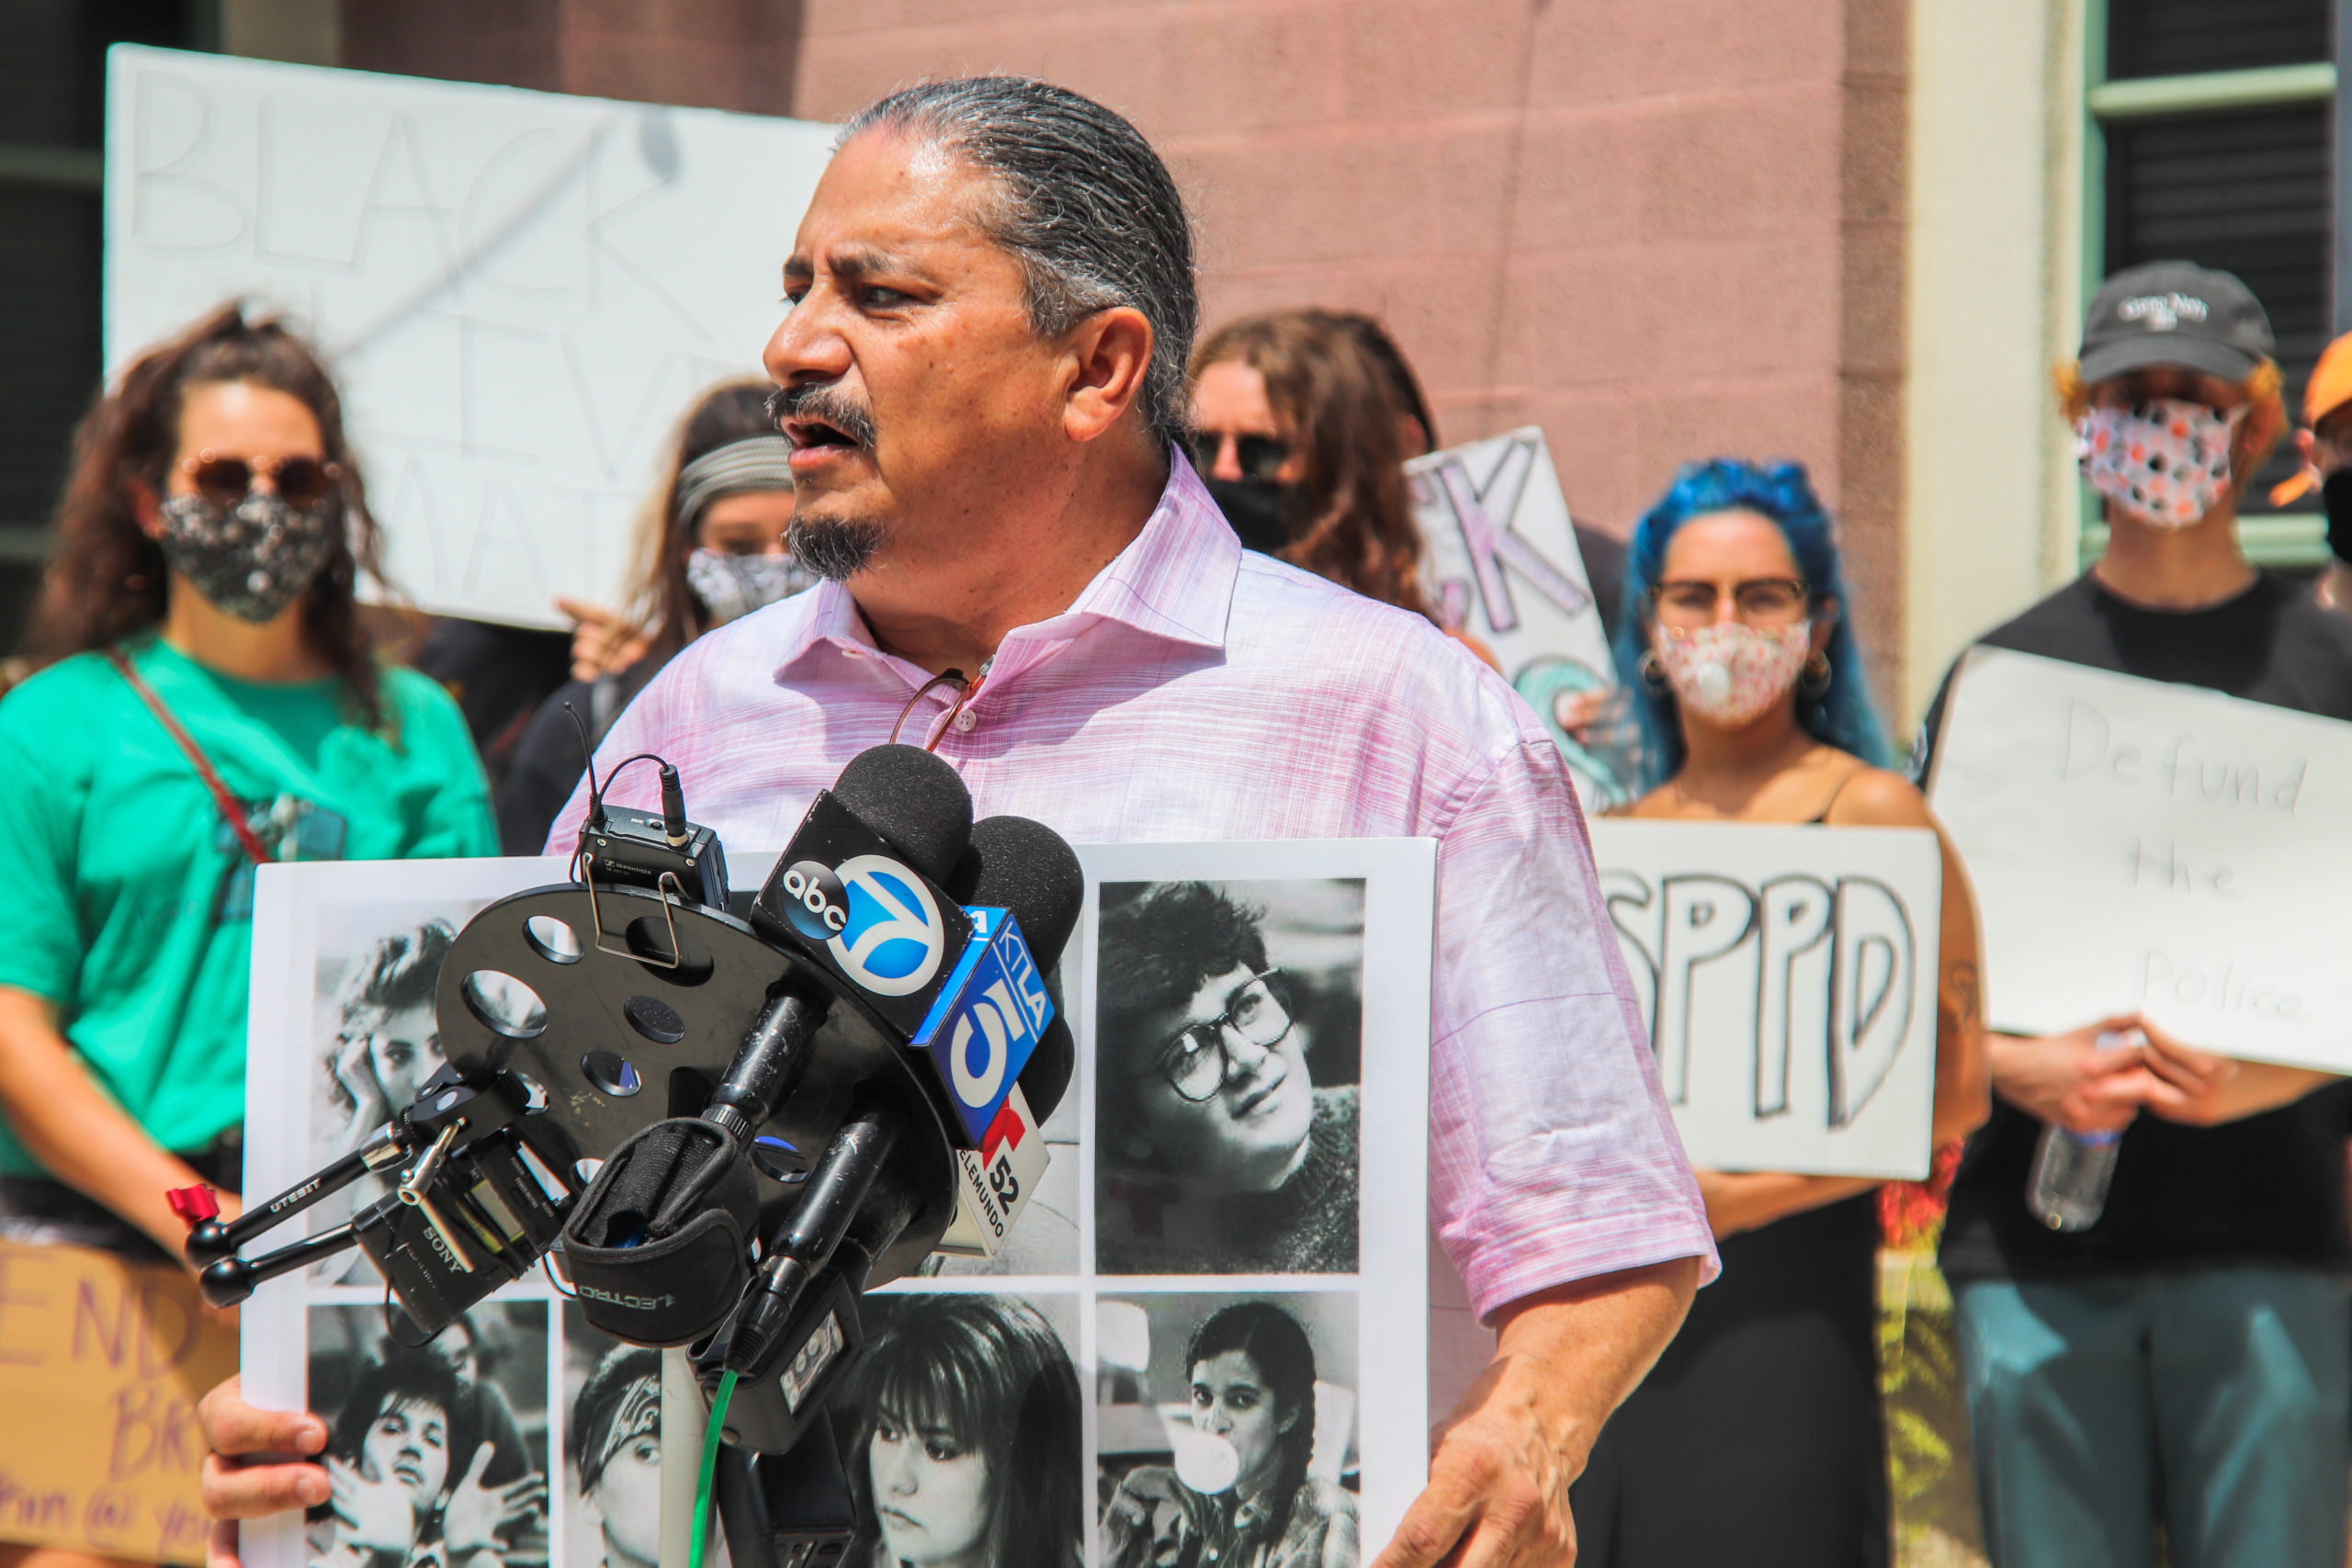 south-pasadena-news-06-24-2020-vanessa-marquez-police-shooting-wrongful-death-lawsuit-city-hall-33